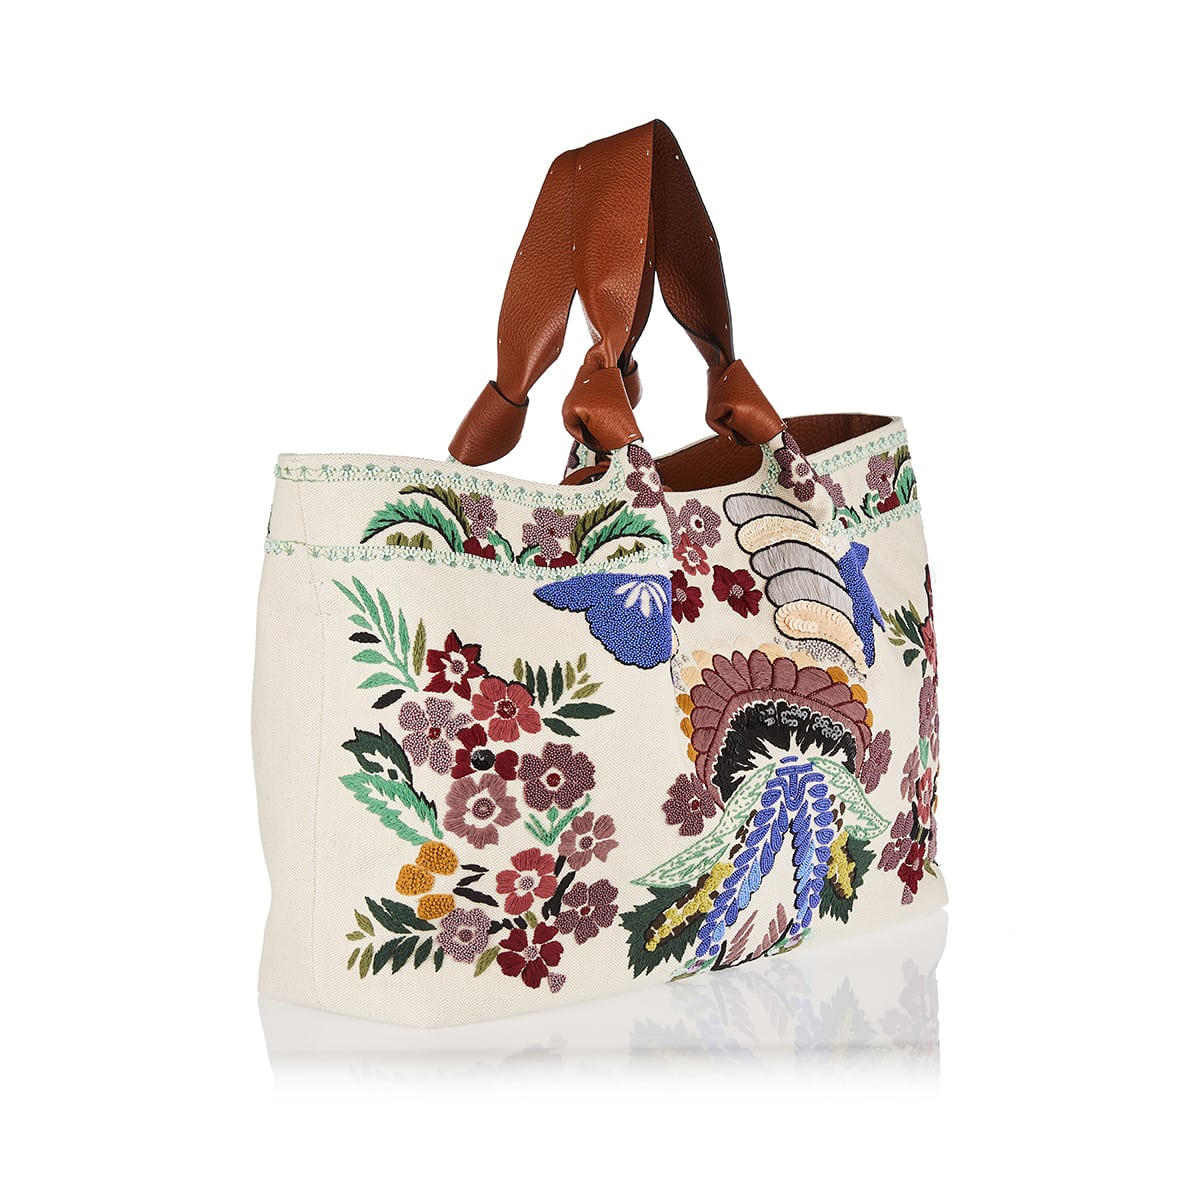 02 Bow Edition Atelier embroidered canvas tote